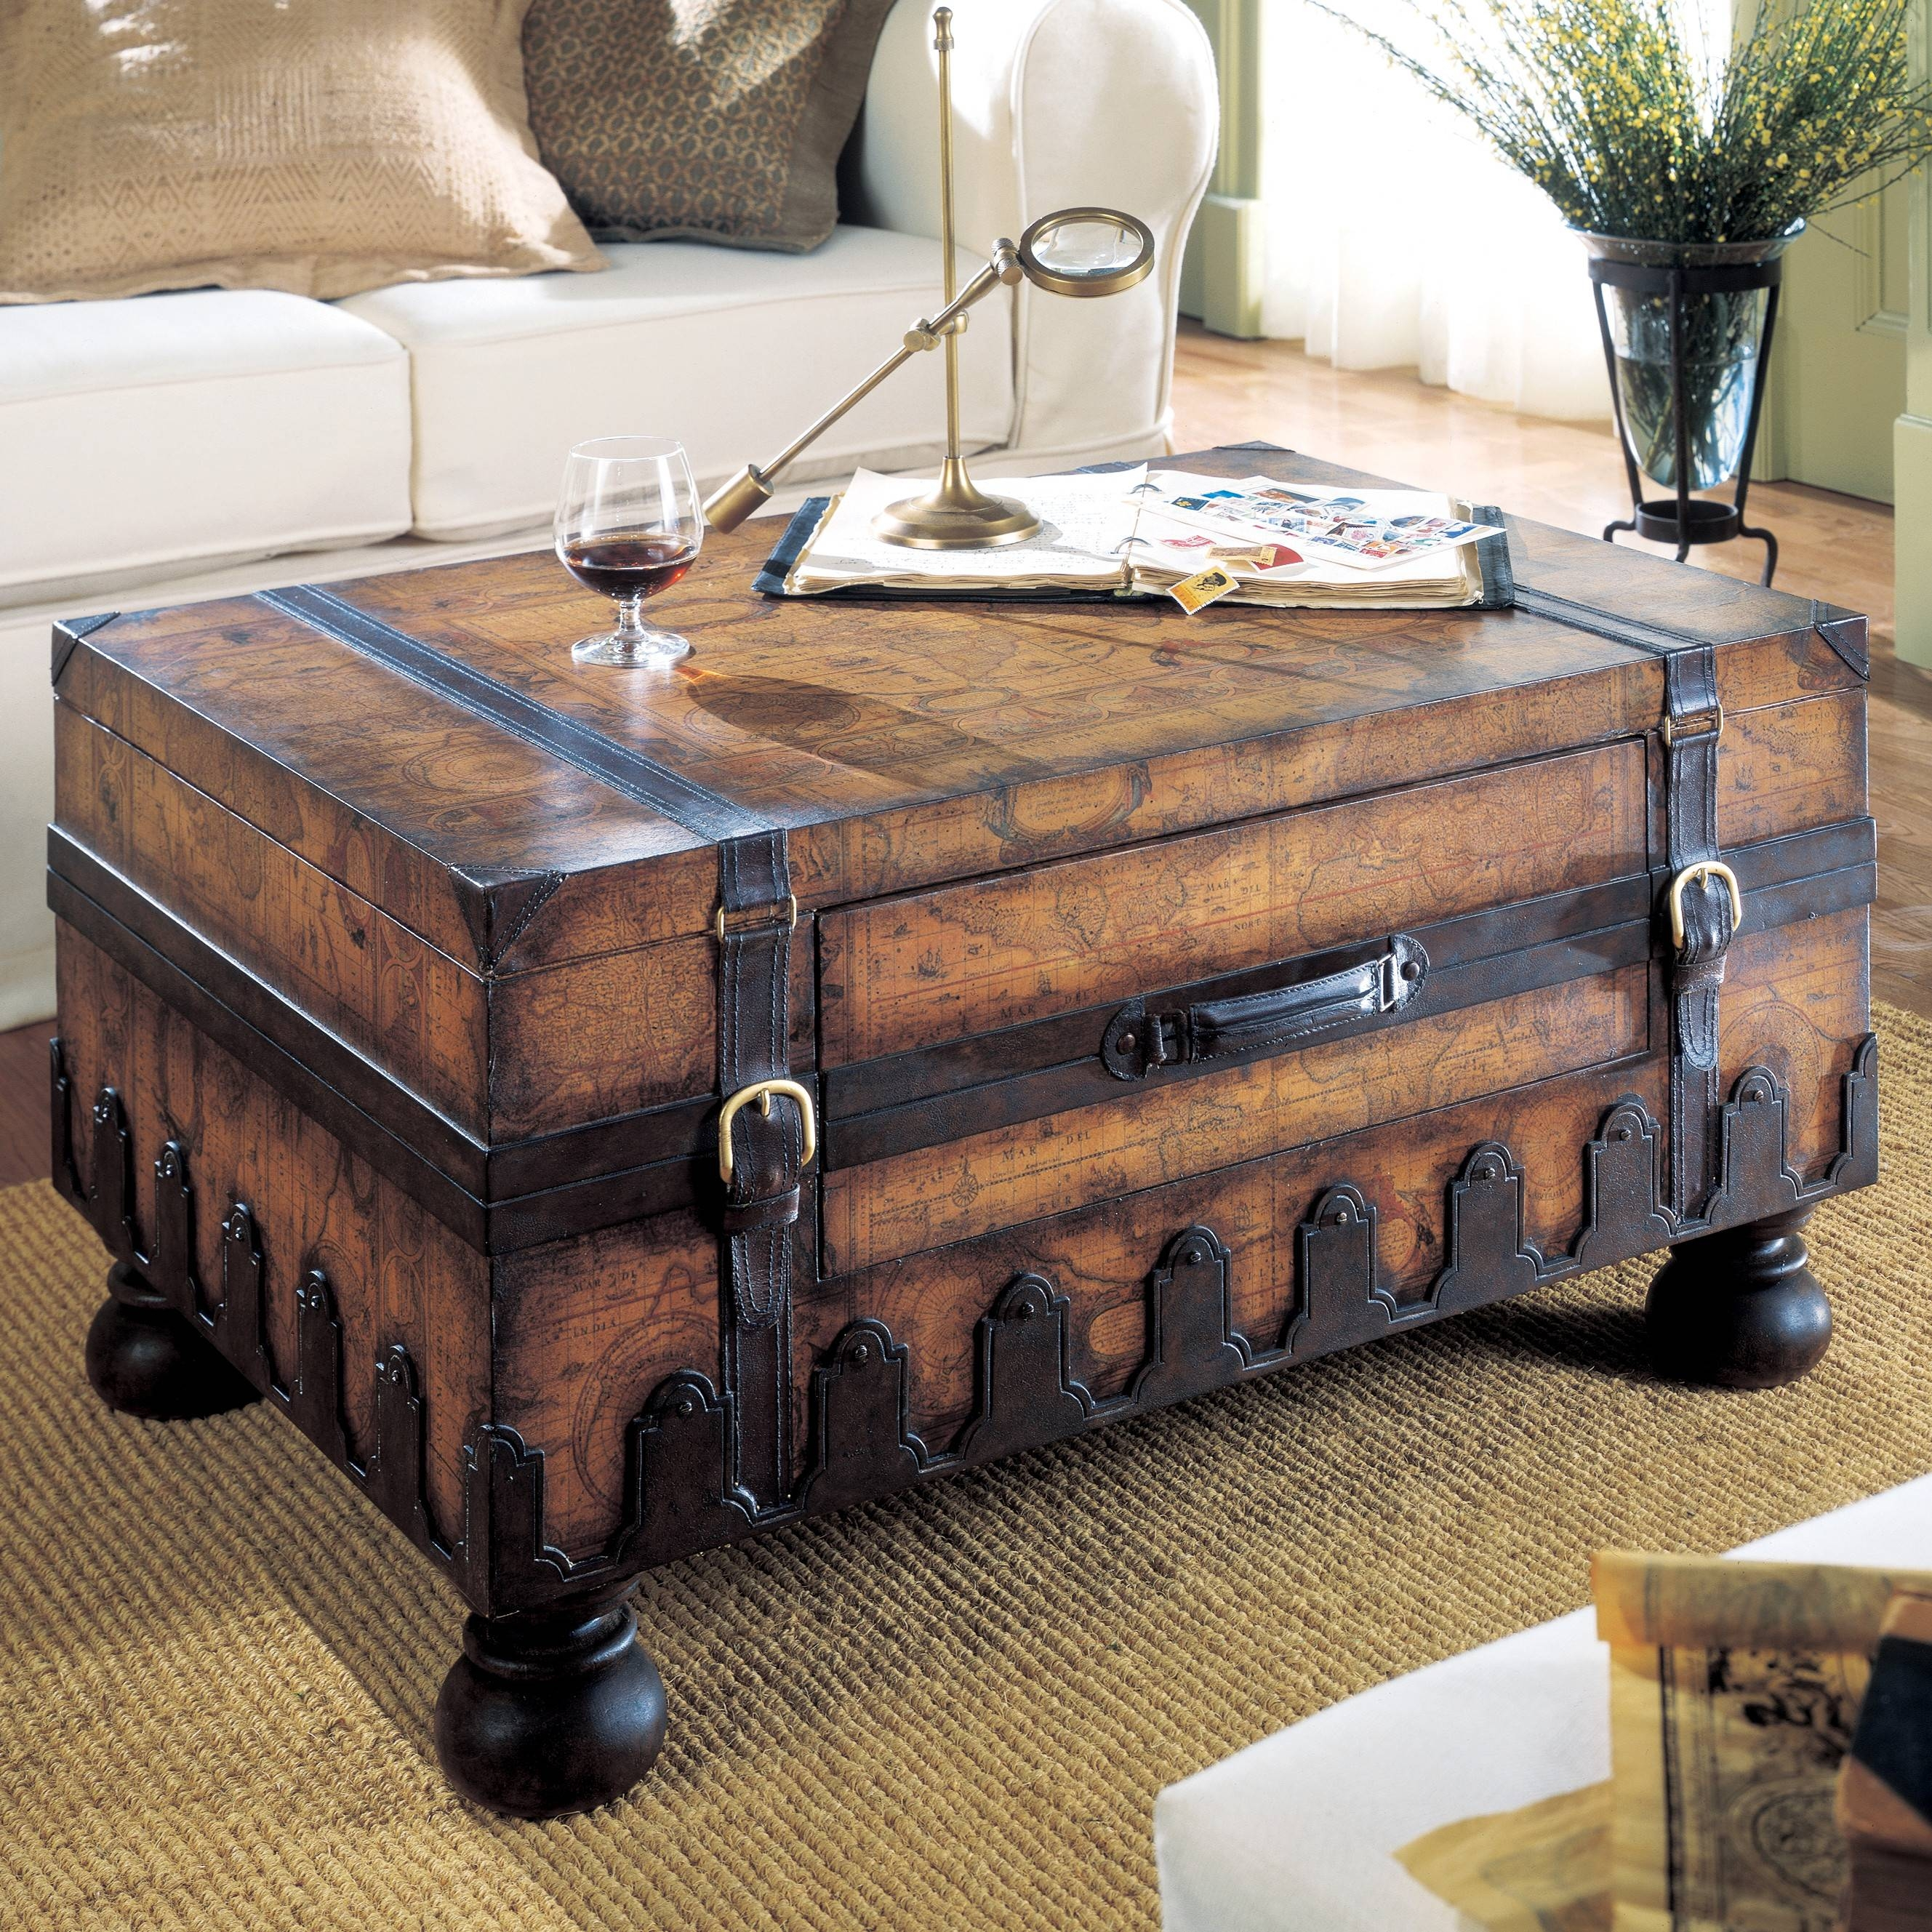 Remarkable Trunk Coffee Table – End Tables, Trunk Coffee Table throughout Heritage Coffee Tables (Image 26 of 30)